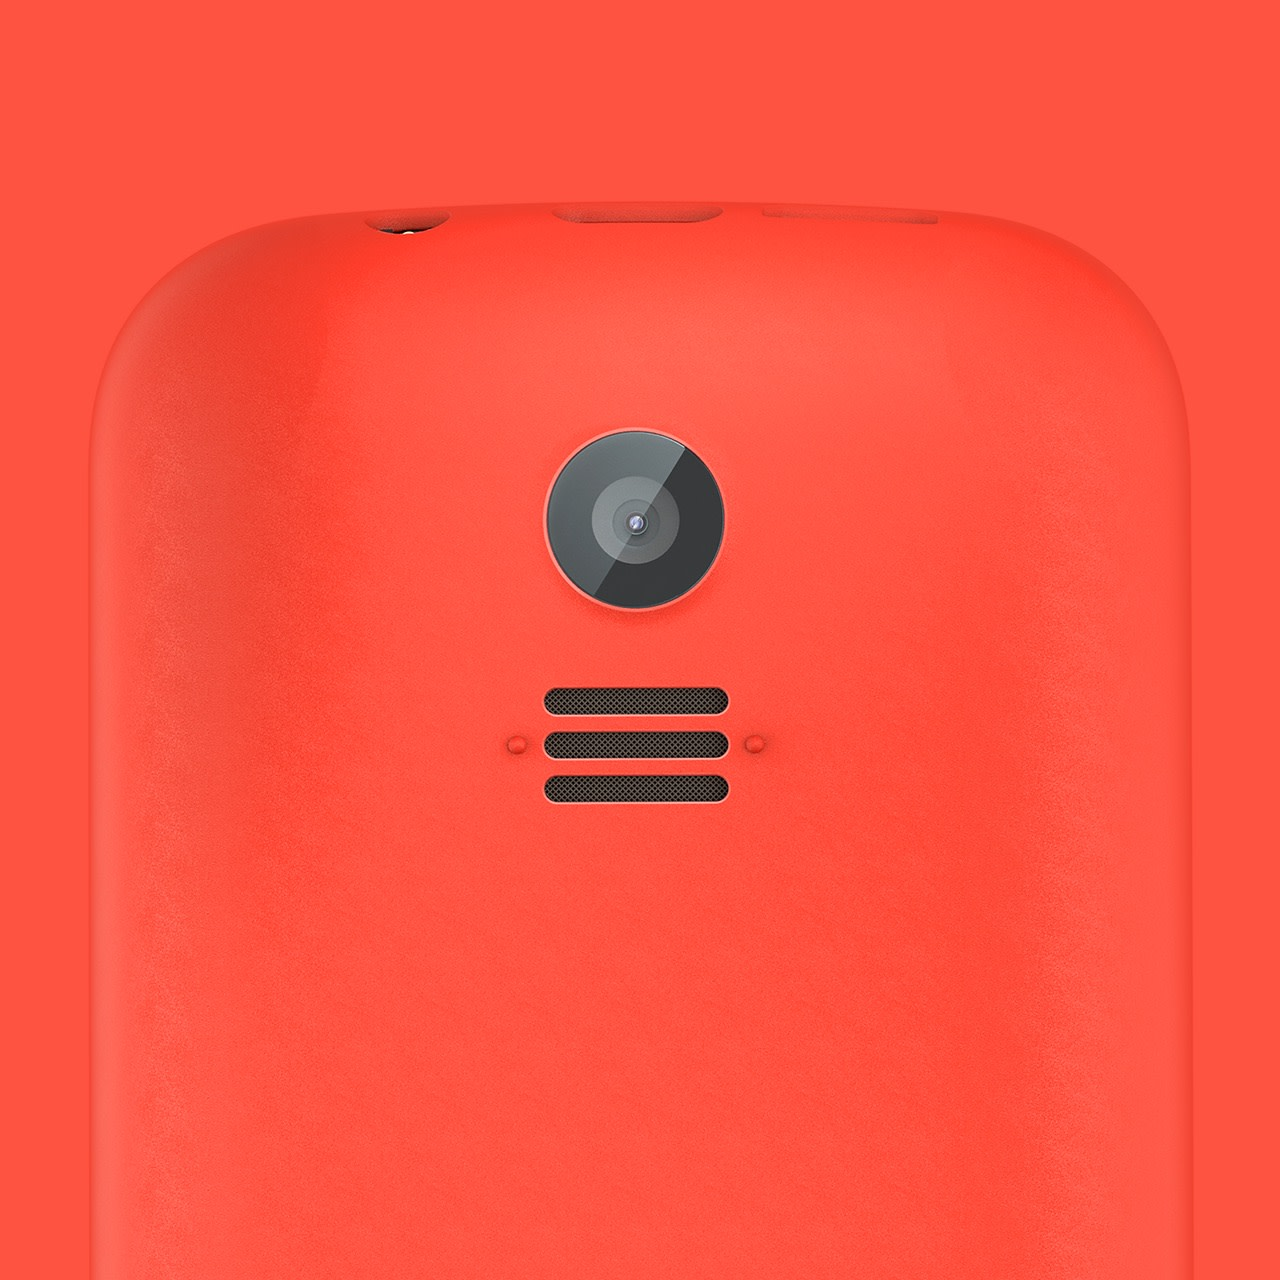 nokia_130-design_red-1280x1280.jpg